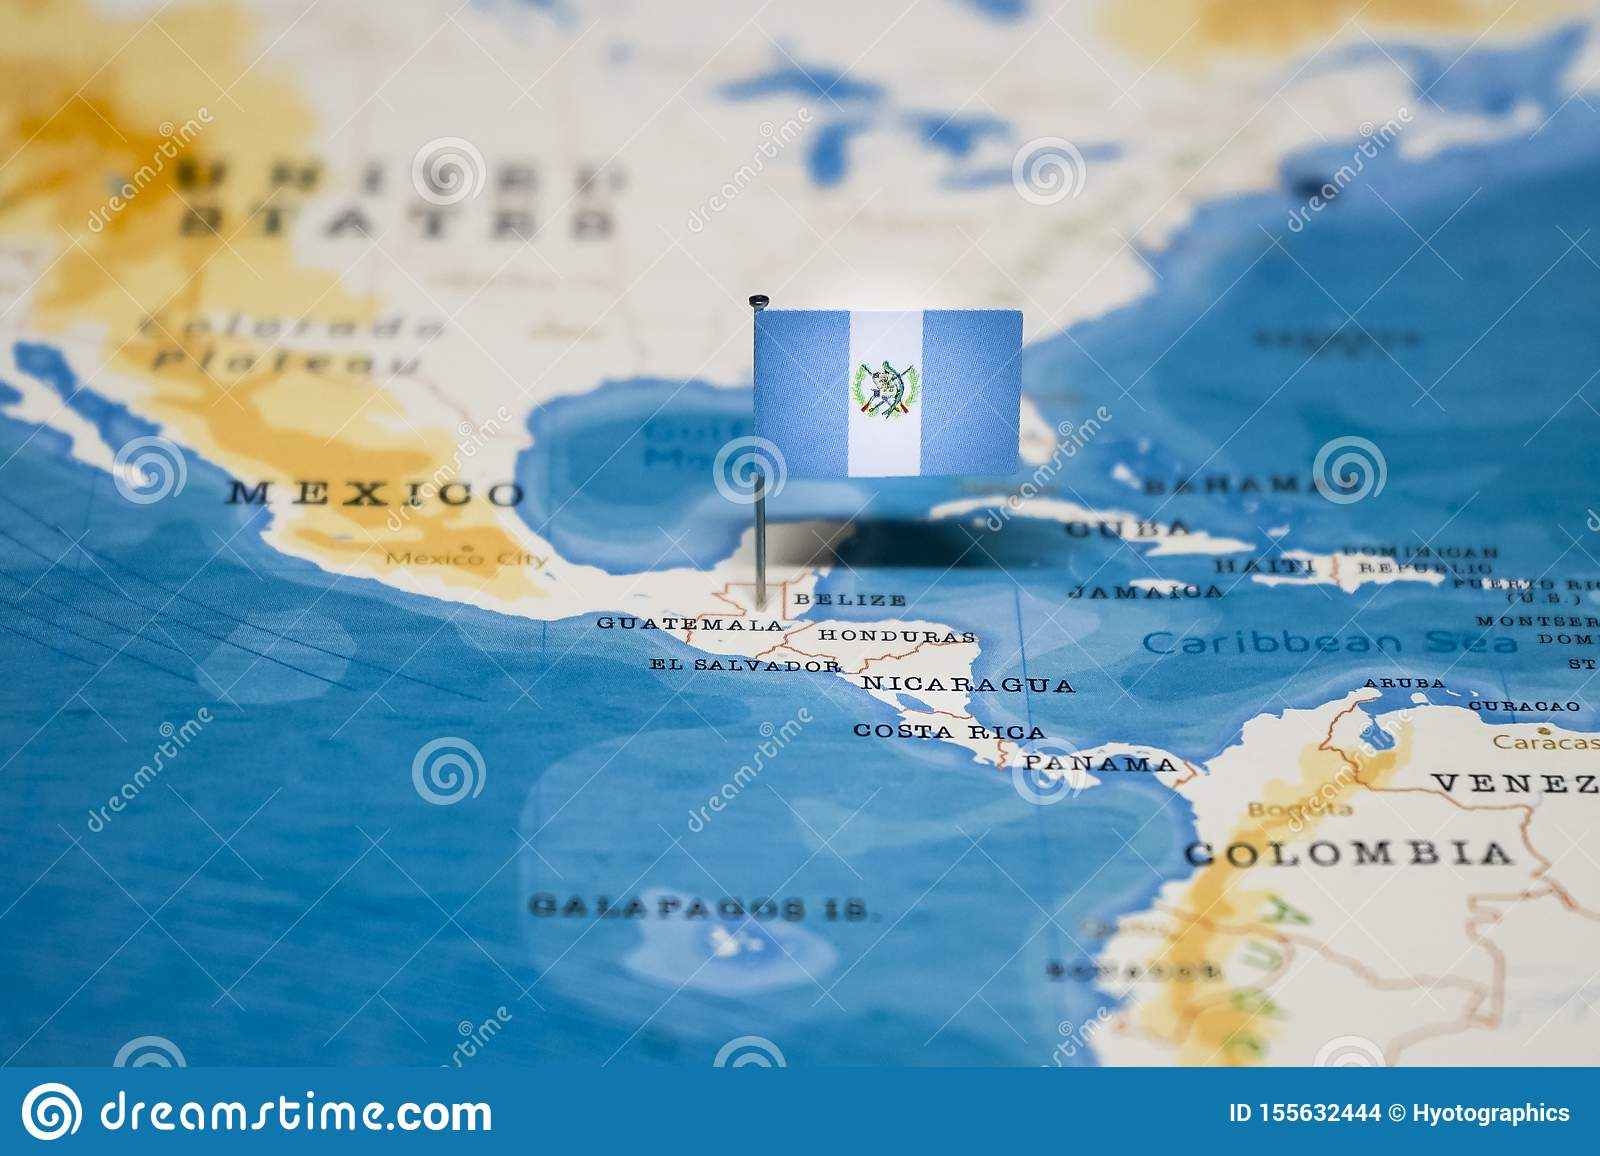 Picture of: The Flag Of Guatemala In The World Map Stock Photo Image Of Geography Holiday 155632444